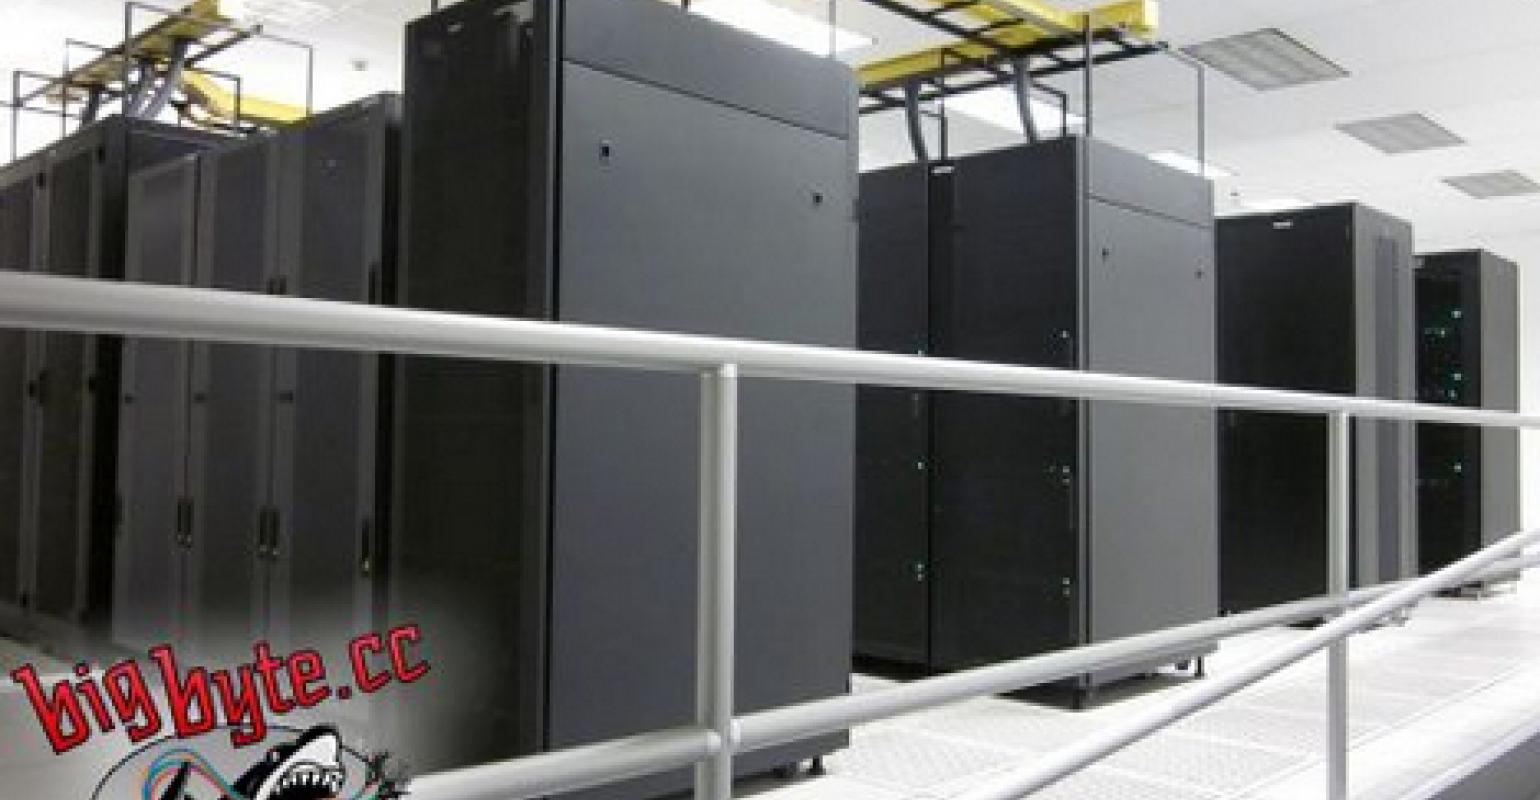 Feds Data Center >> Reports Feds Raid Albuquerque Data Center Data Center Knowledge